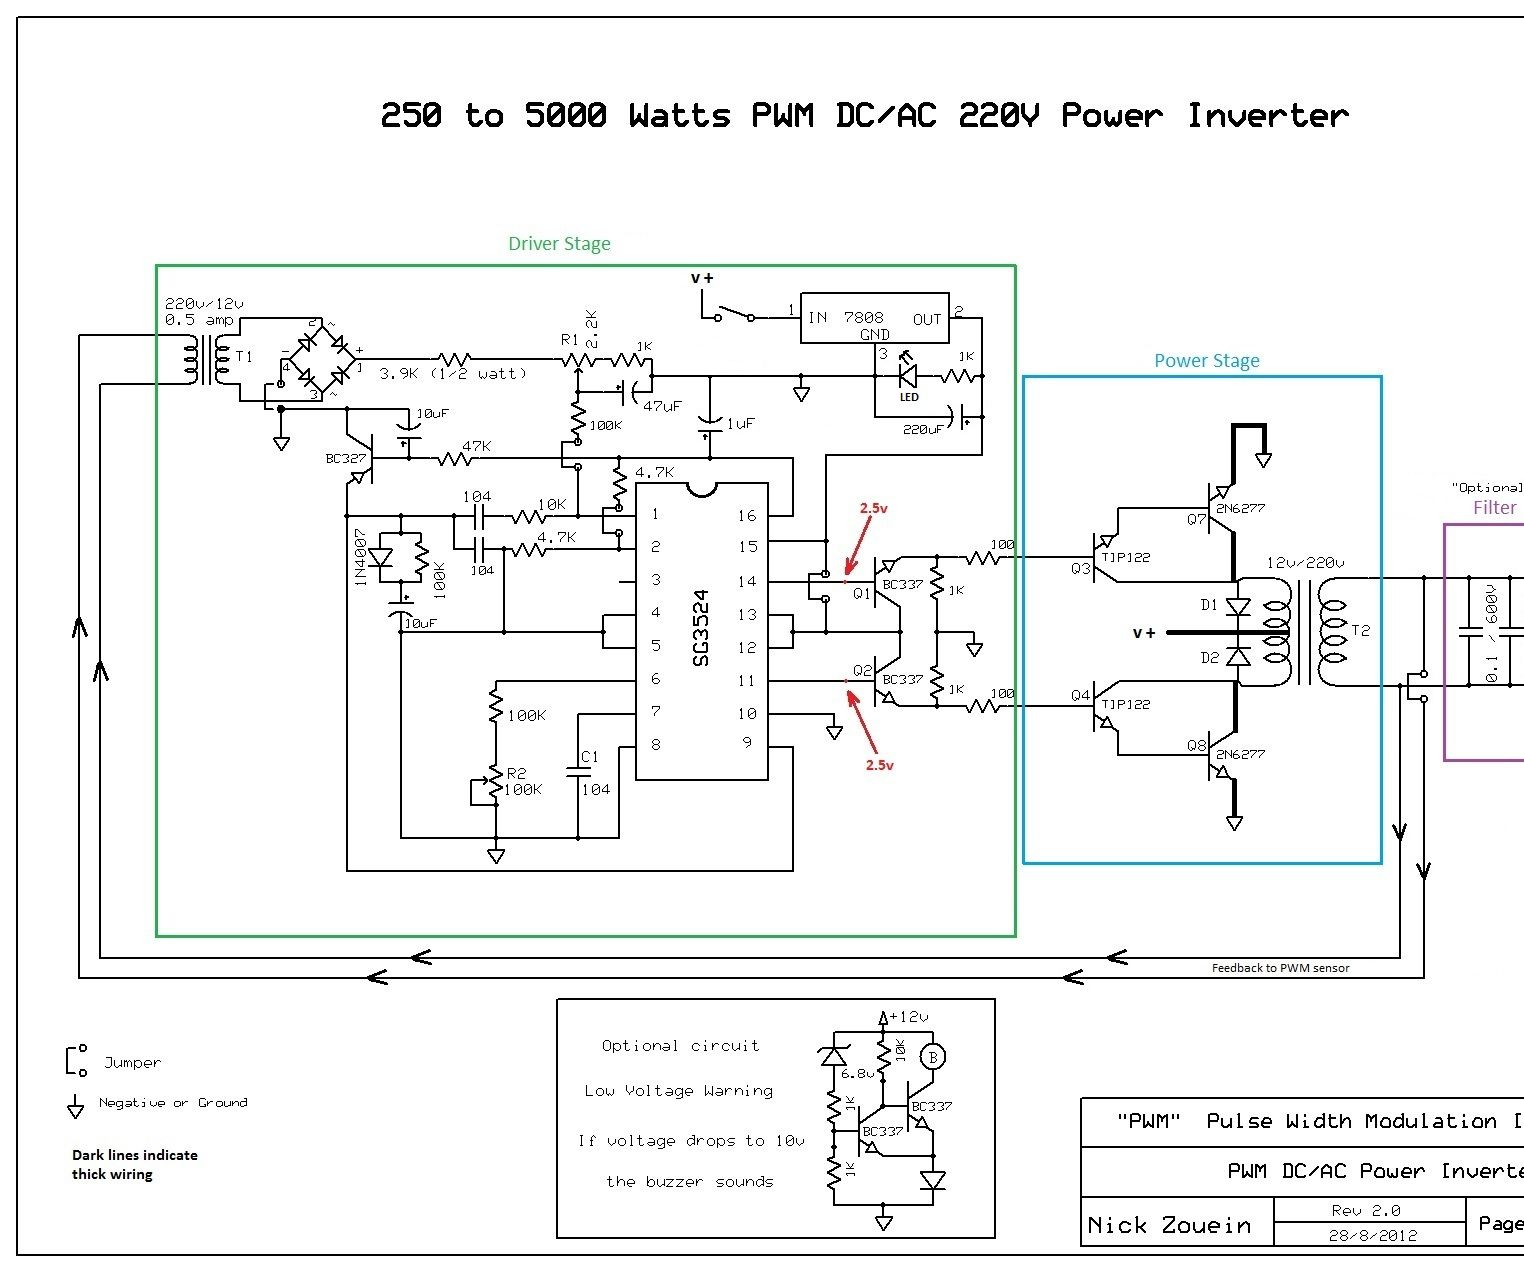 small resolution of gmc c5500 fuse box diagram wiring library250 to 5000 watts pwm dc ac 220v power inverter